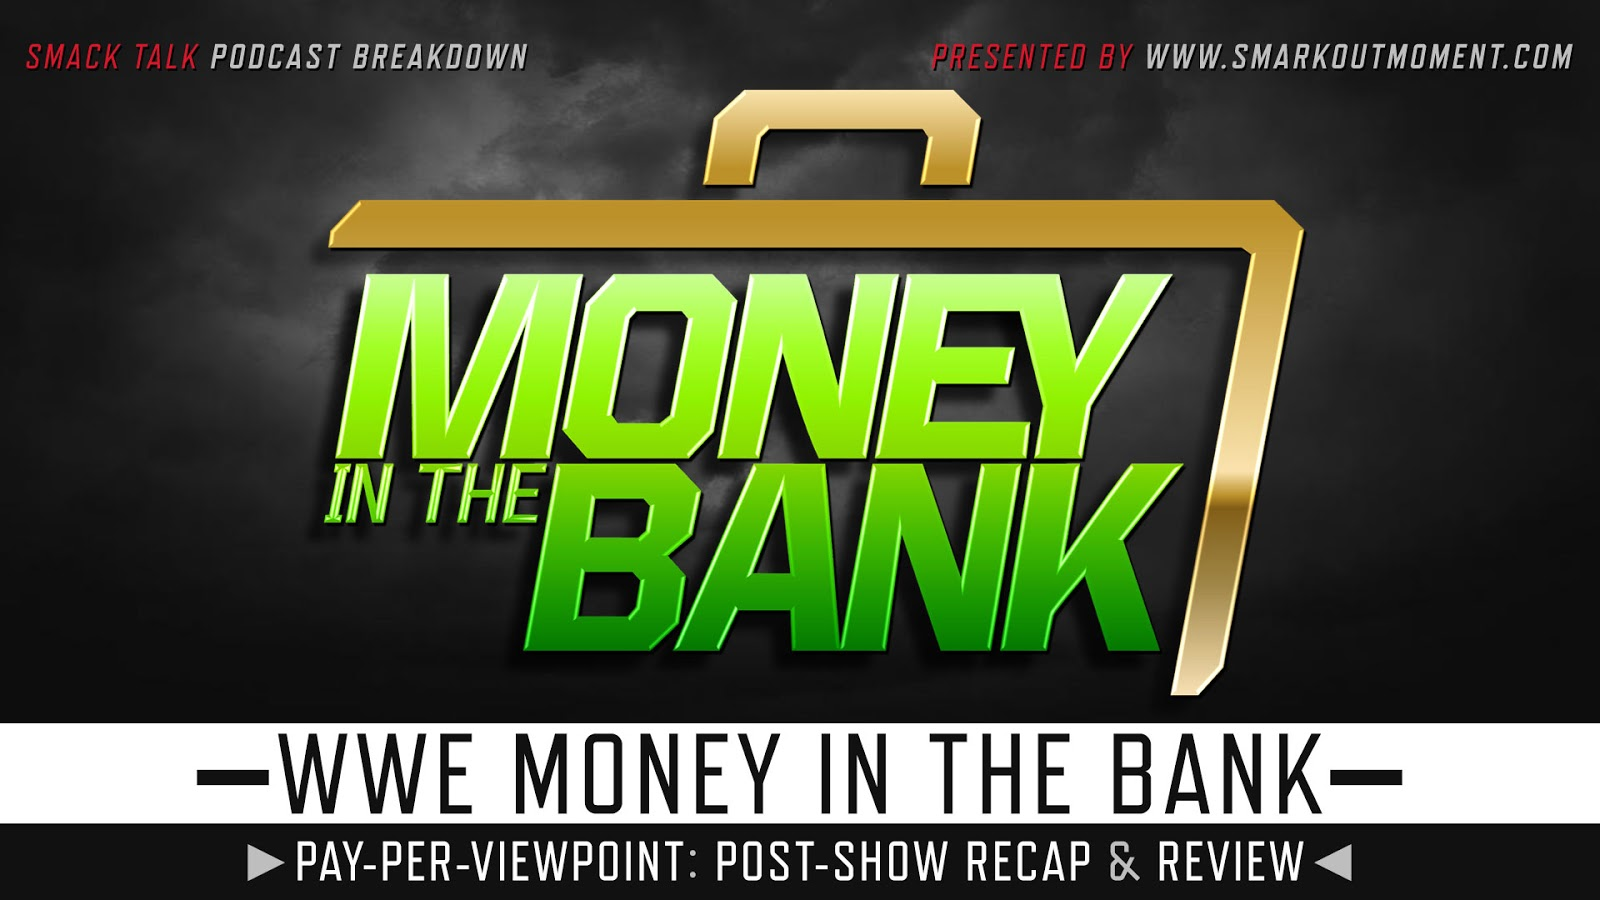 WWE Money in the Bank 2020 Recap and Review Podcast